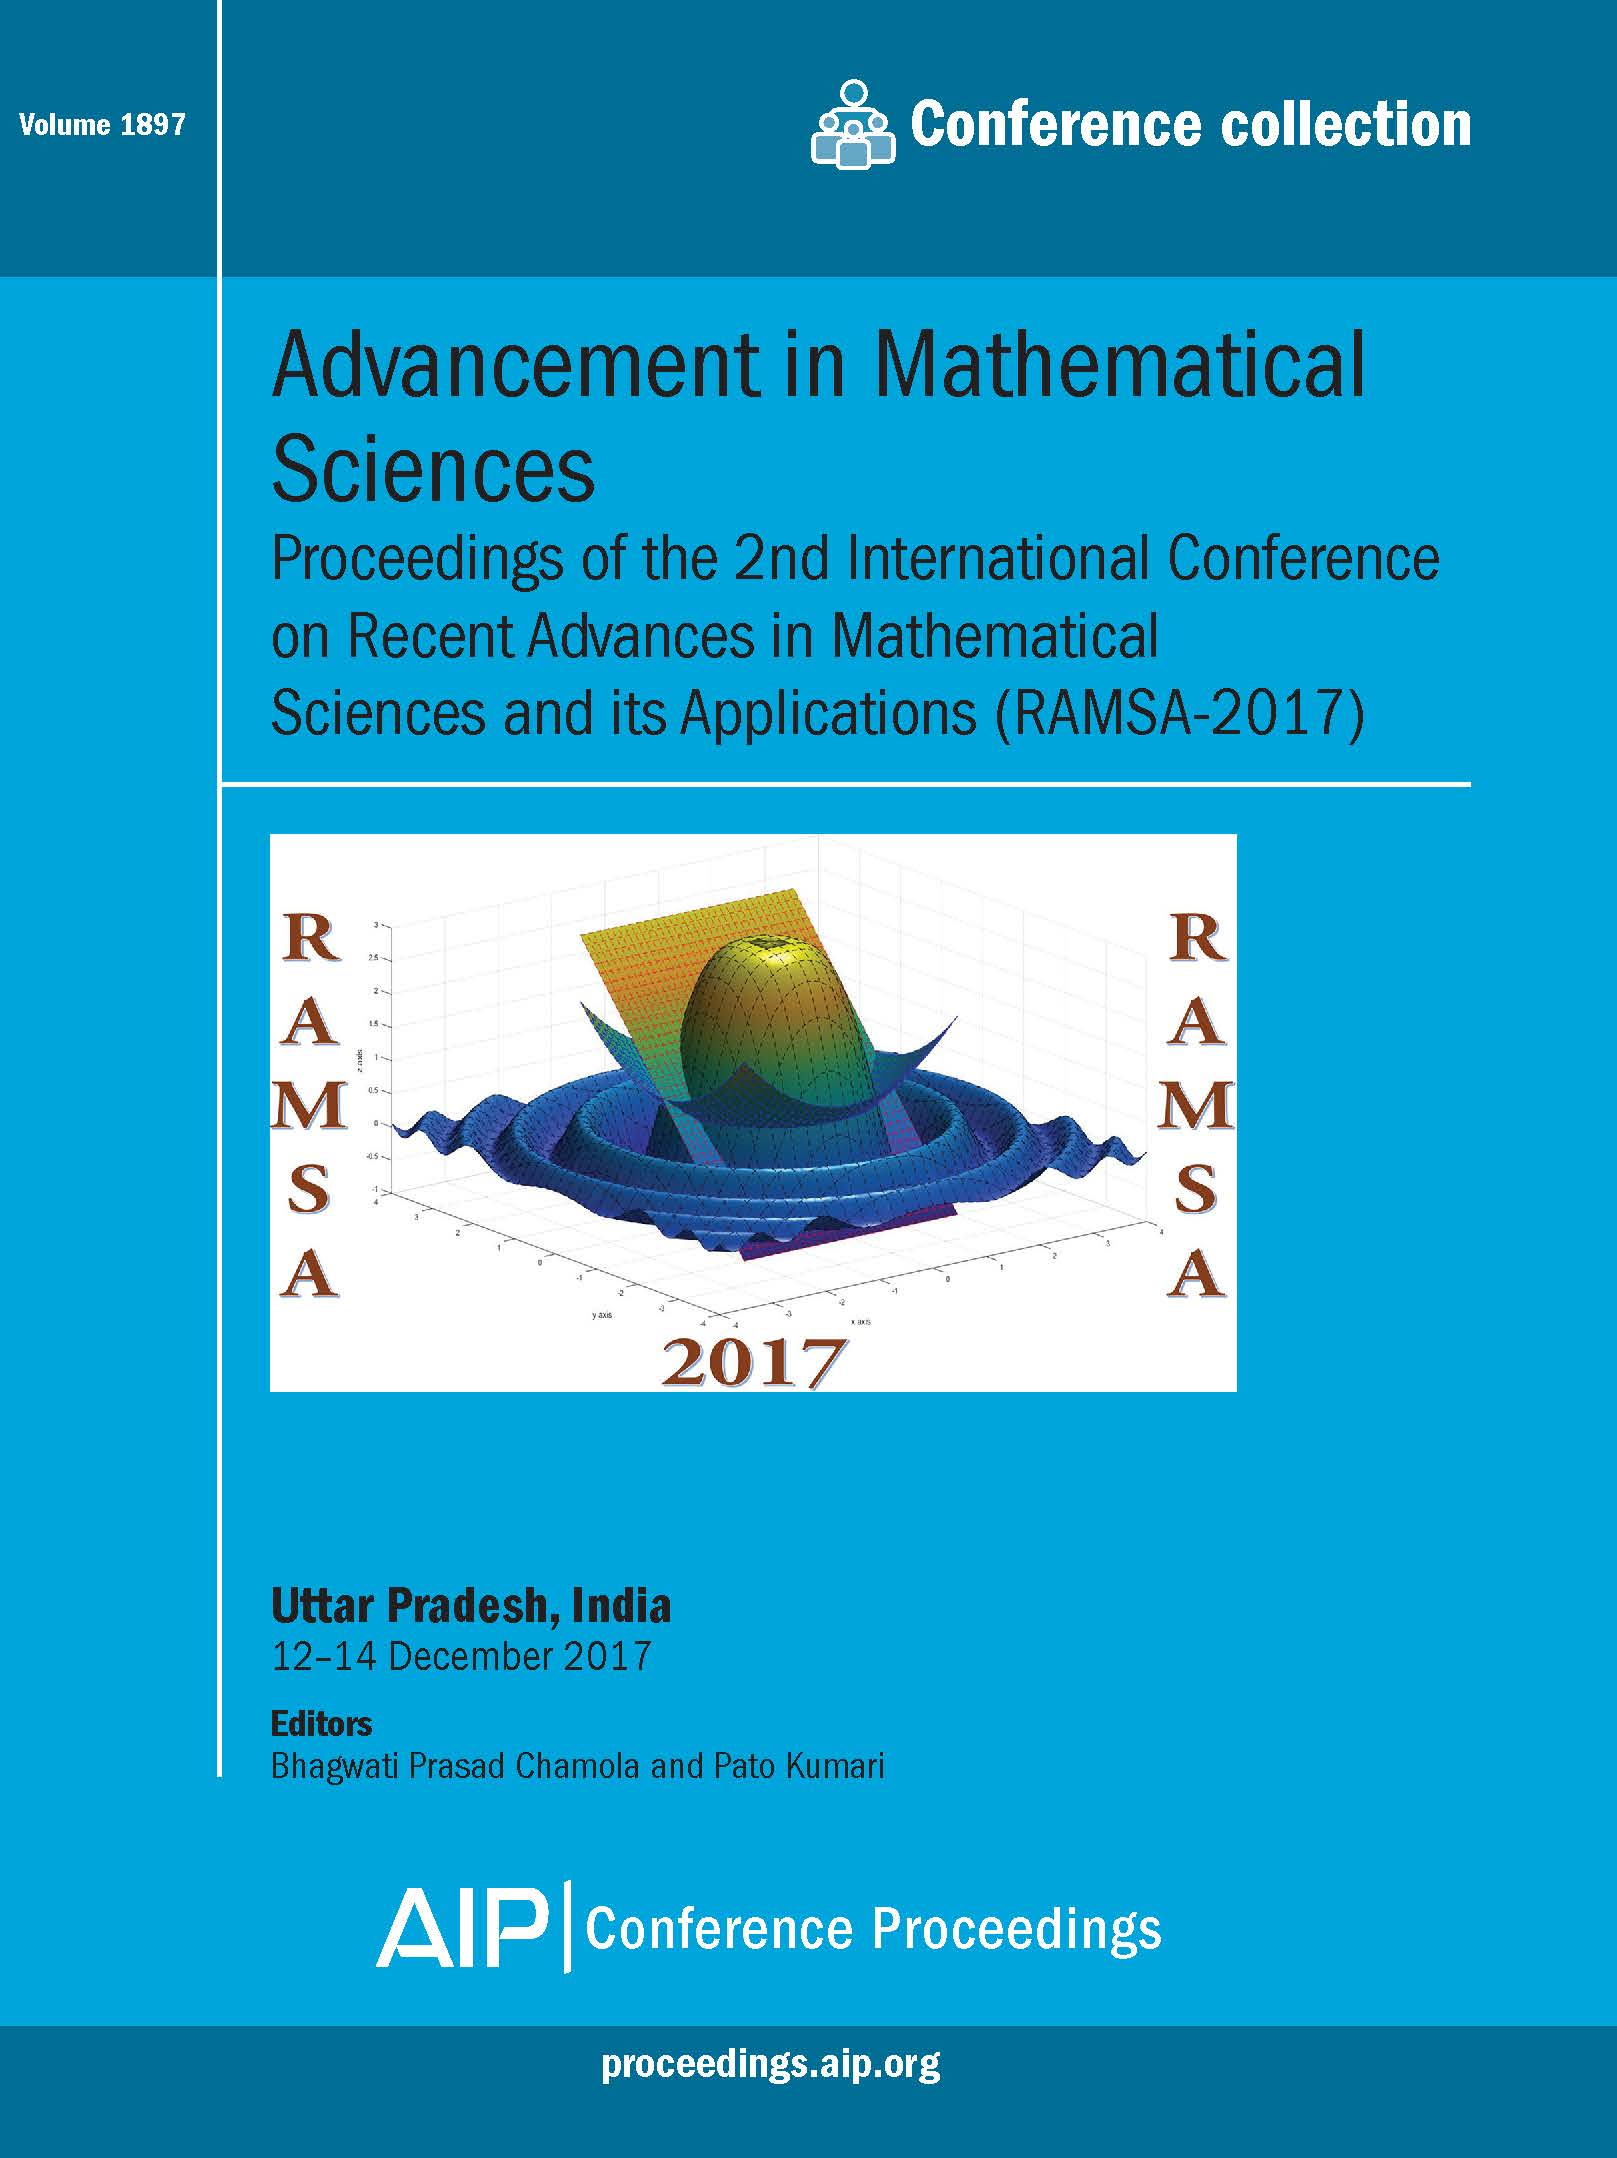 Volume 1897: Advancement in Mathematical Sciences | AIP Publishing